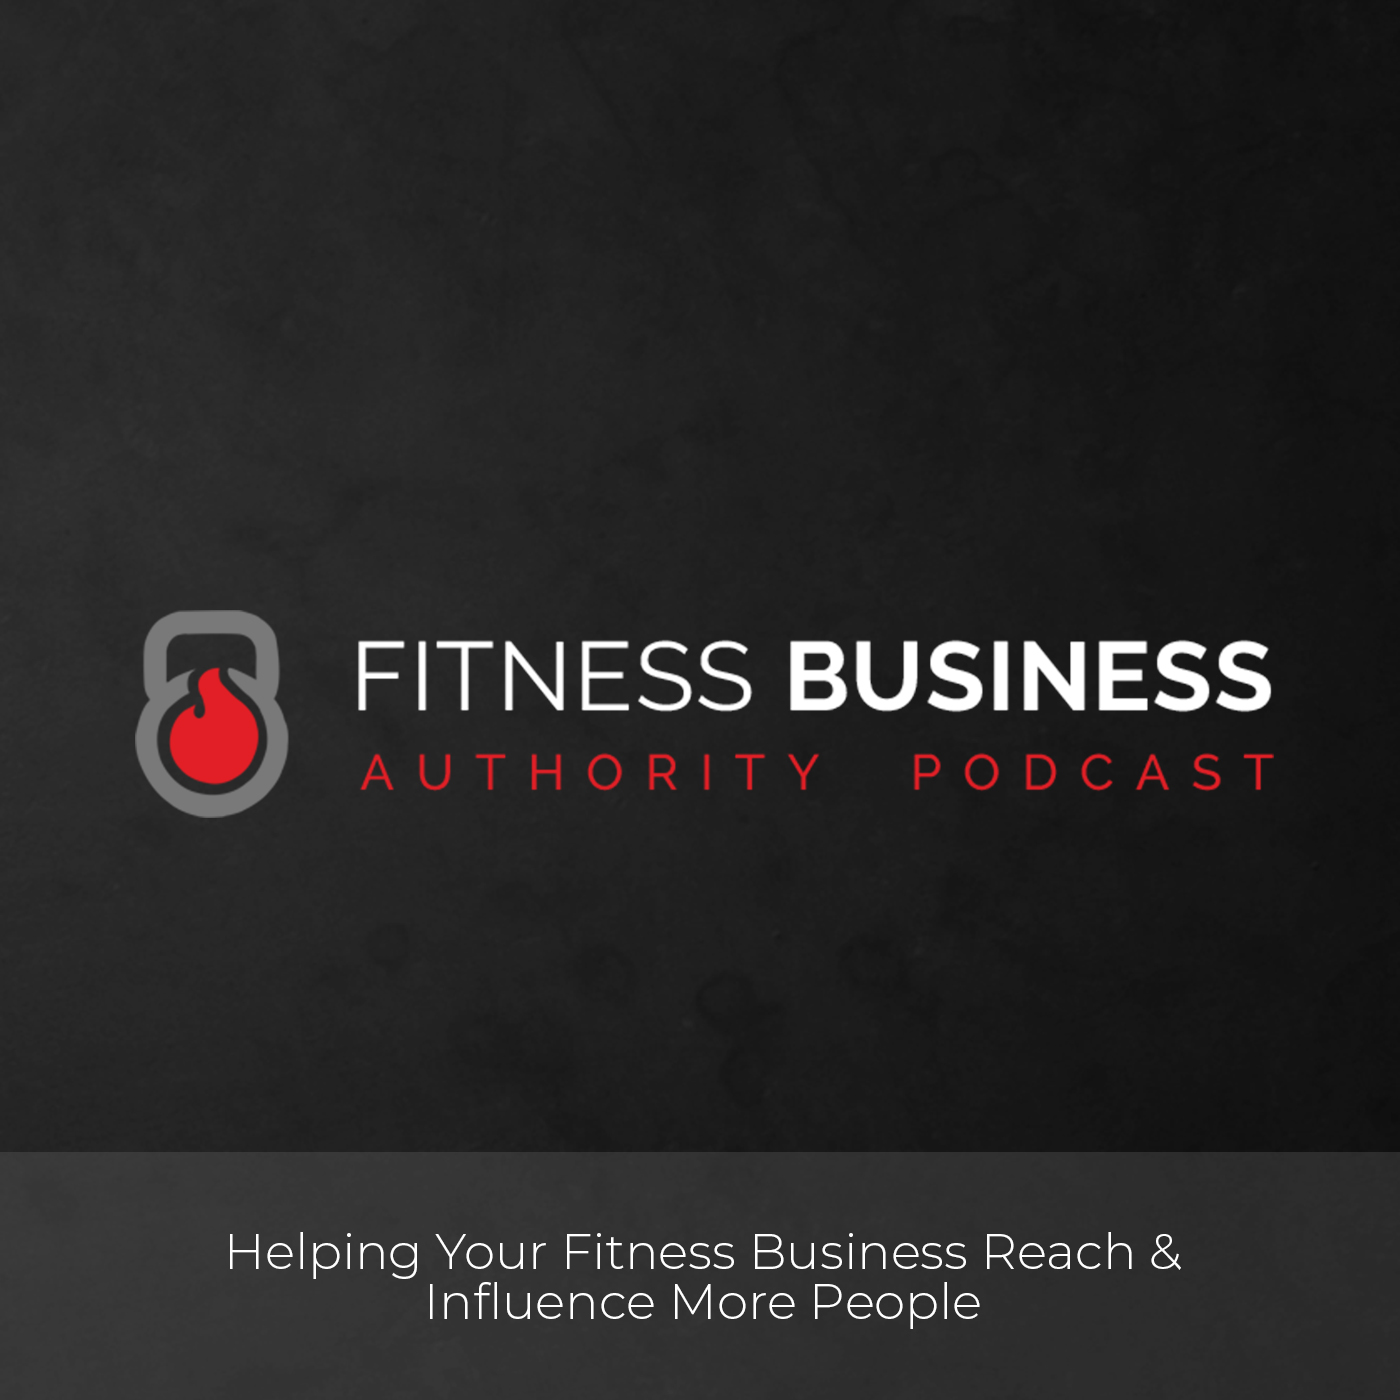 Fitness Business Authority Podcast show art